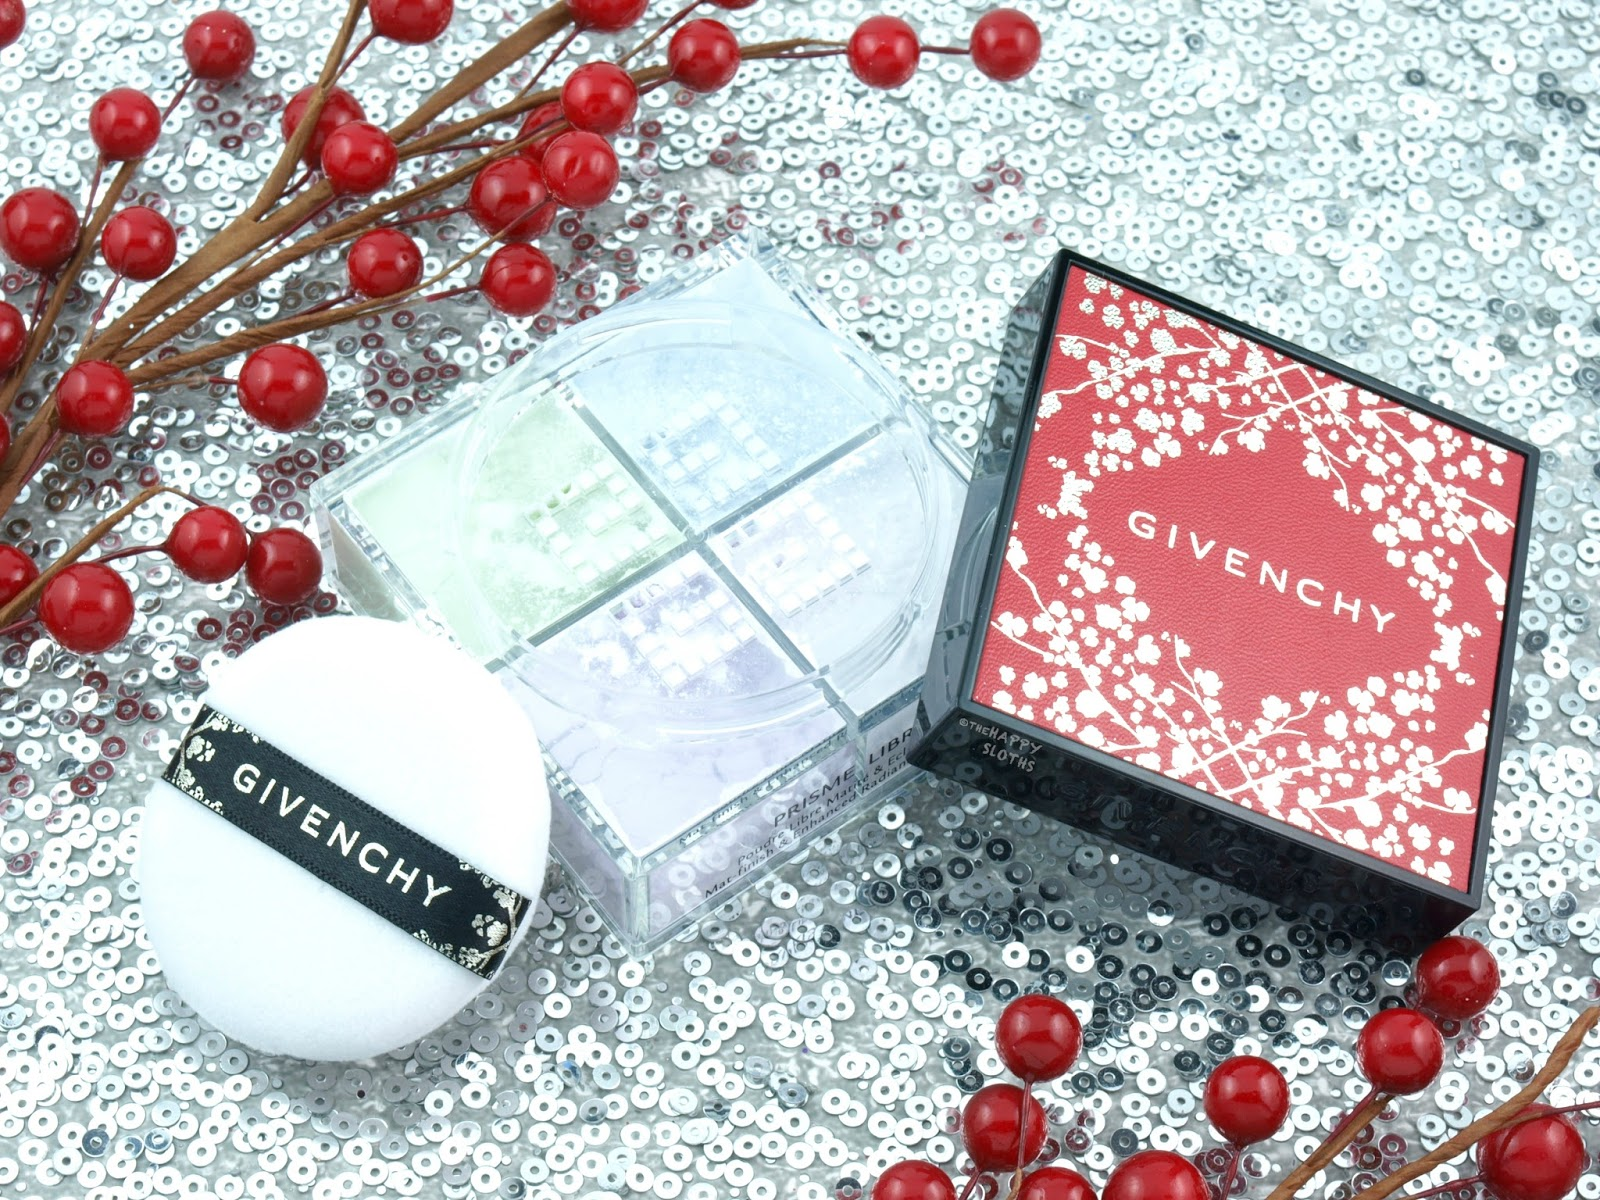 Givenchy Lunar New Year 2018 | Limited Edition Prisme Libre: Review and Swatches